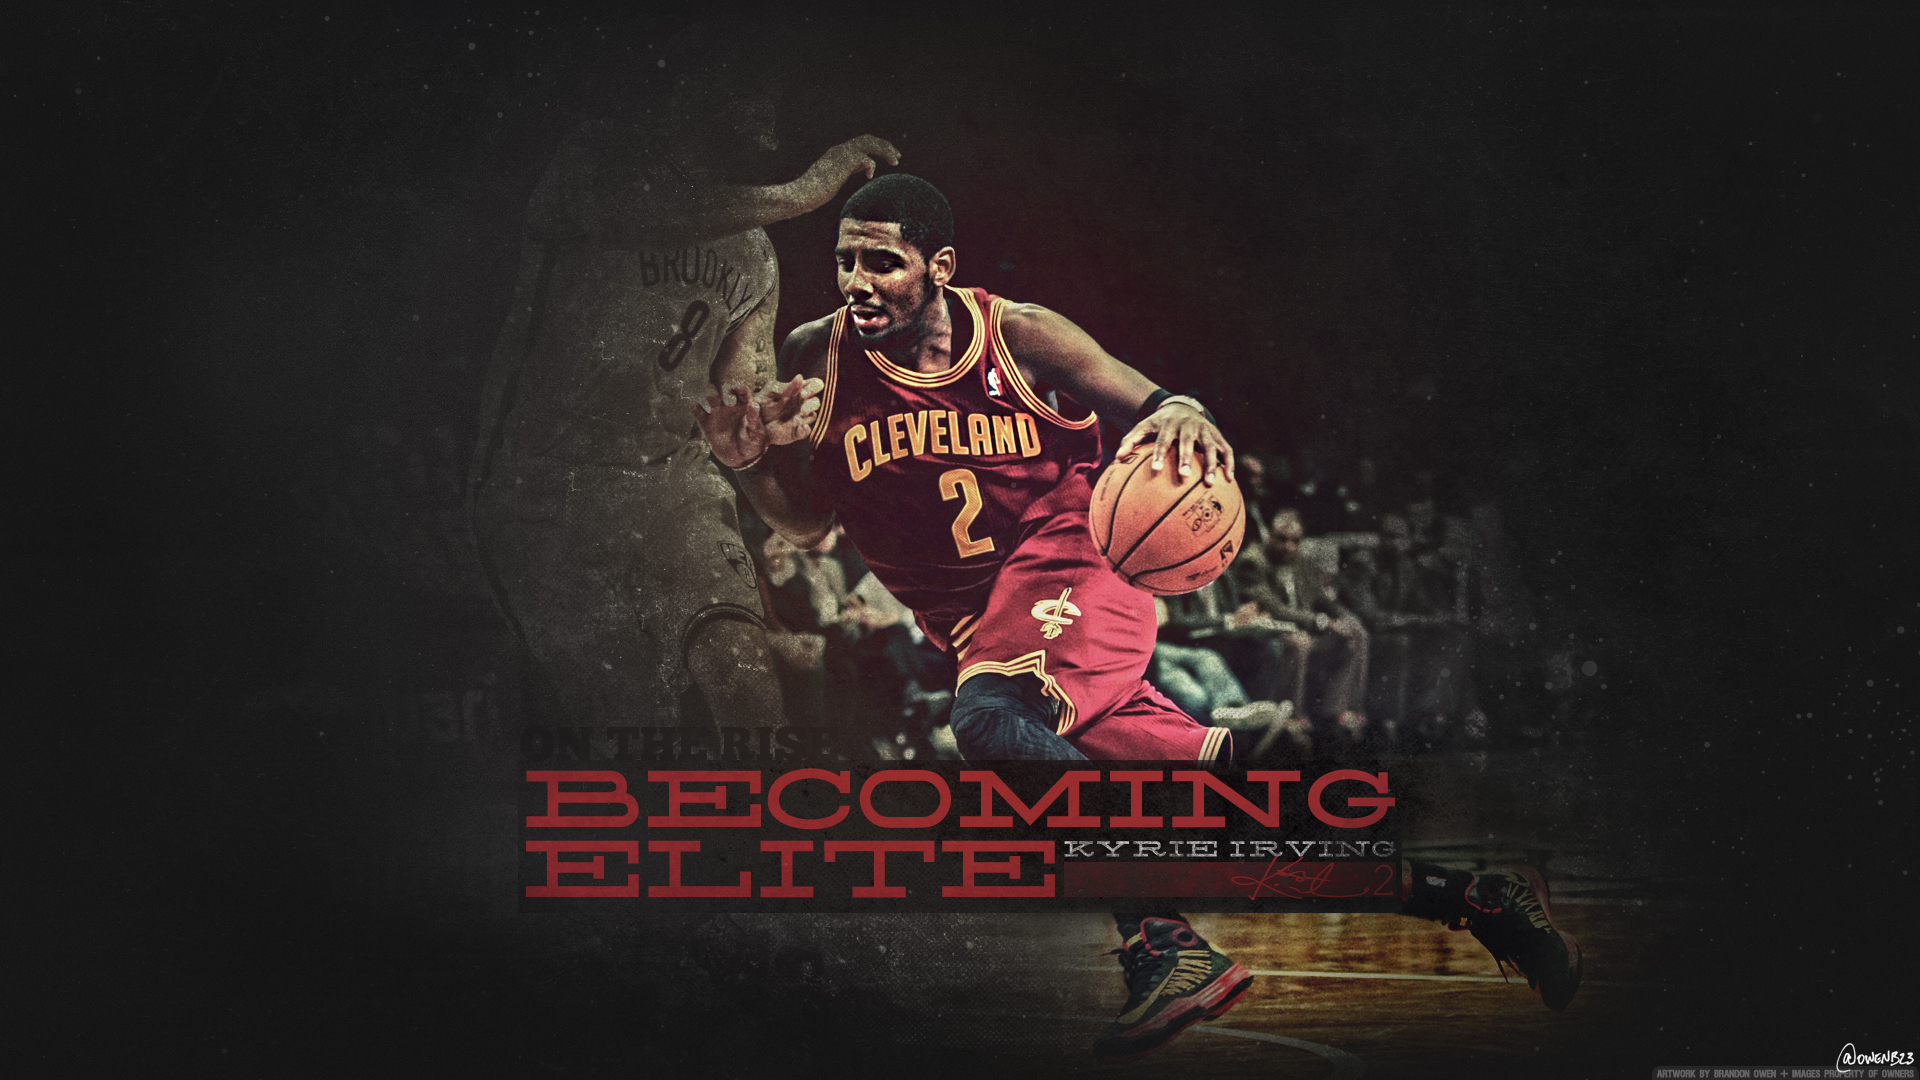 Hd wallpaper kyrie irving - Dunkakis 6 0 Kyrie Irving Becoming Elite Wallpaper By Owenb23